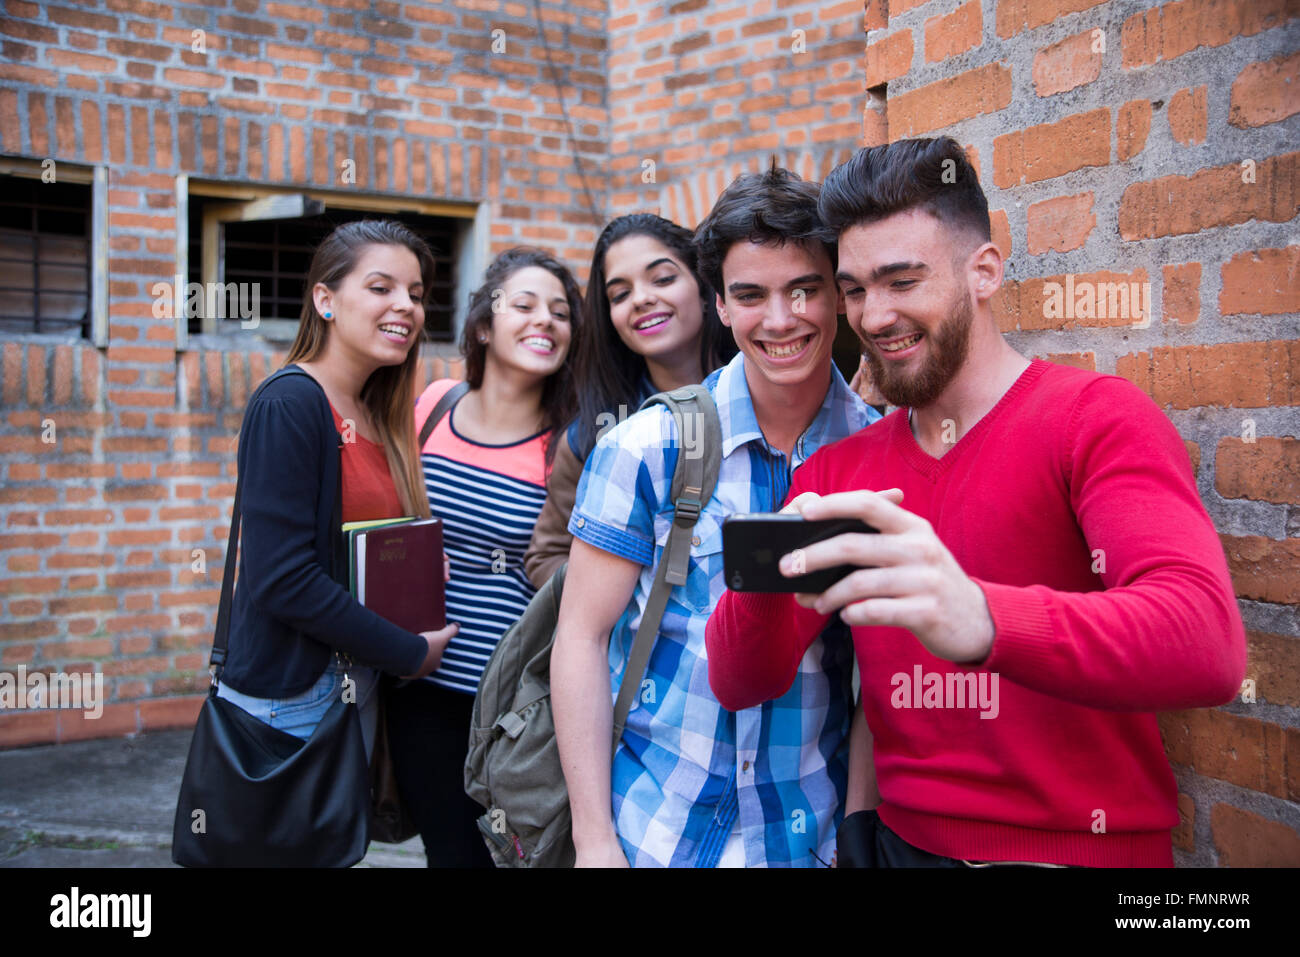 Five college students - Stock Image